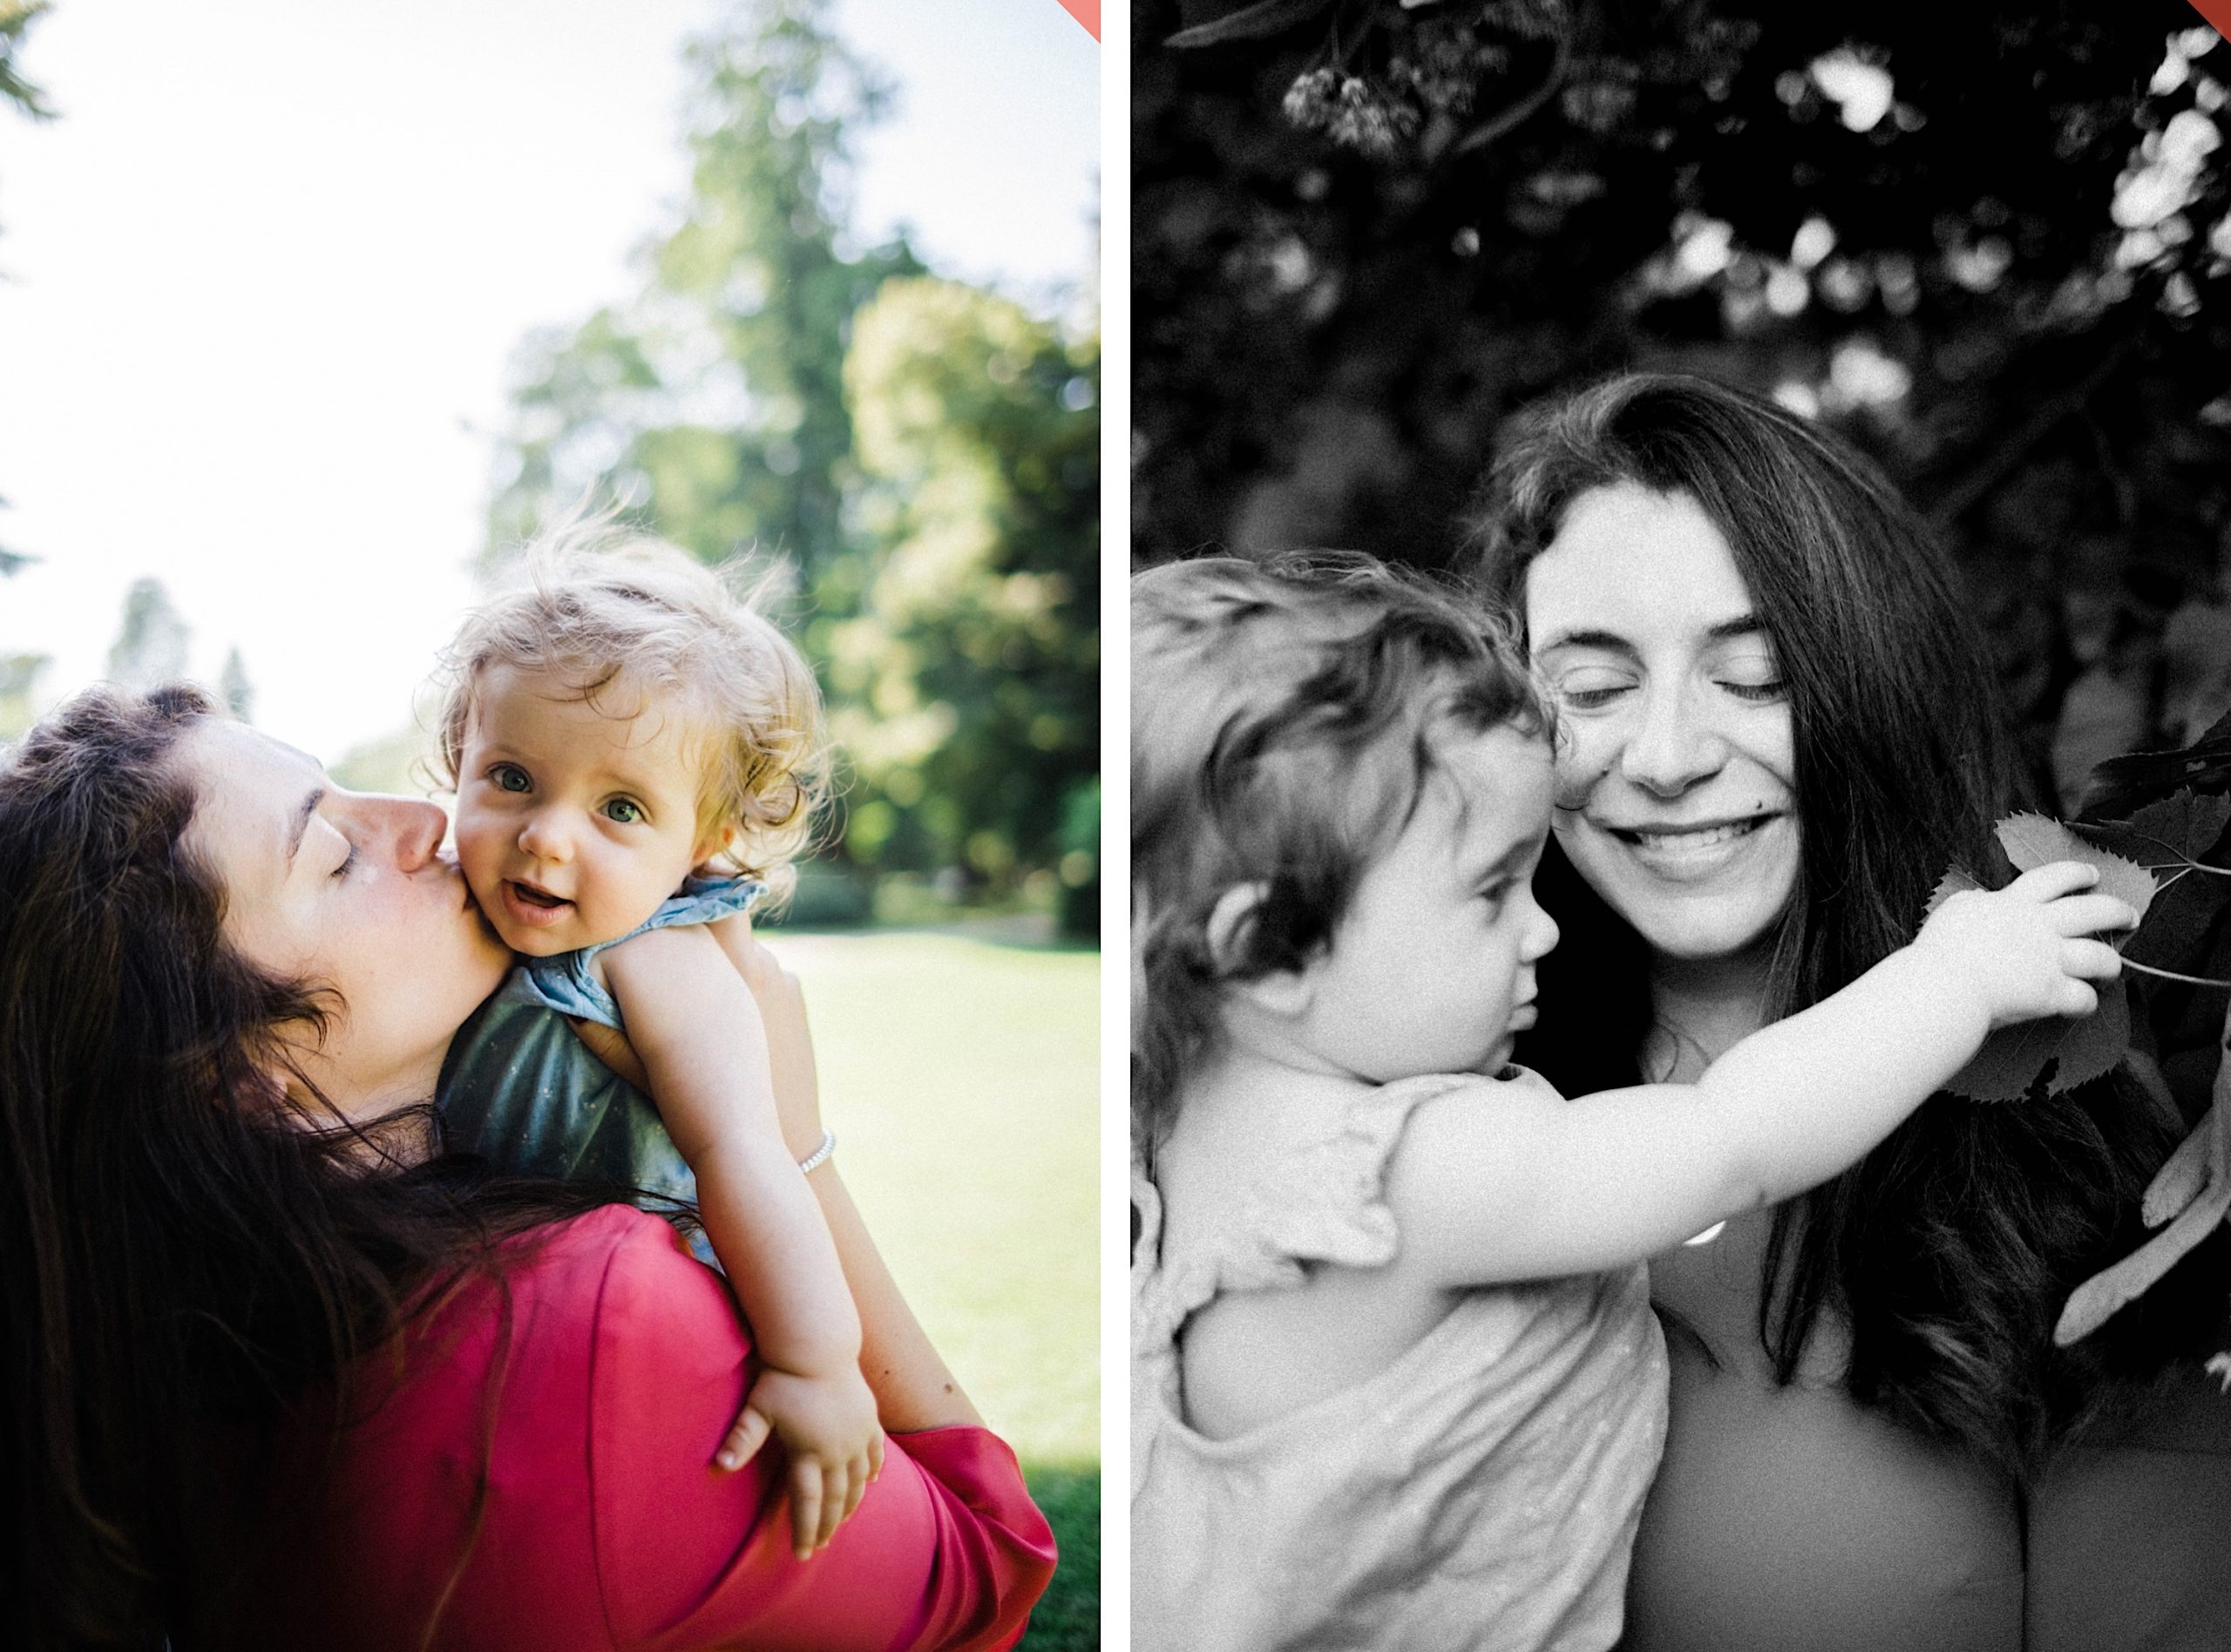 Side-by-side candid family portraits. Left: A Mum kisses her baby girl's cheek surrounded by trees at the Parco di Monza. Right: A Black and white portrait of Mum laughing while her baby reaches for a leaf.